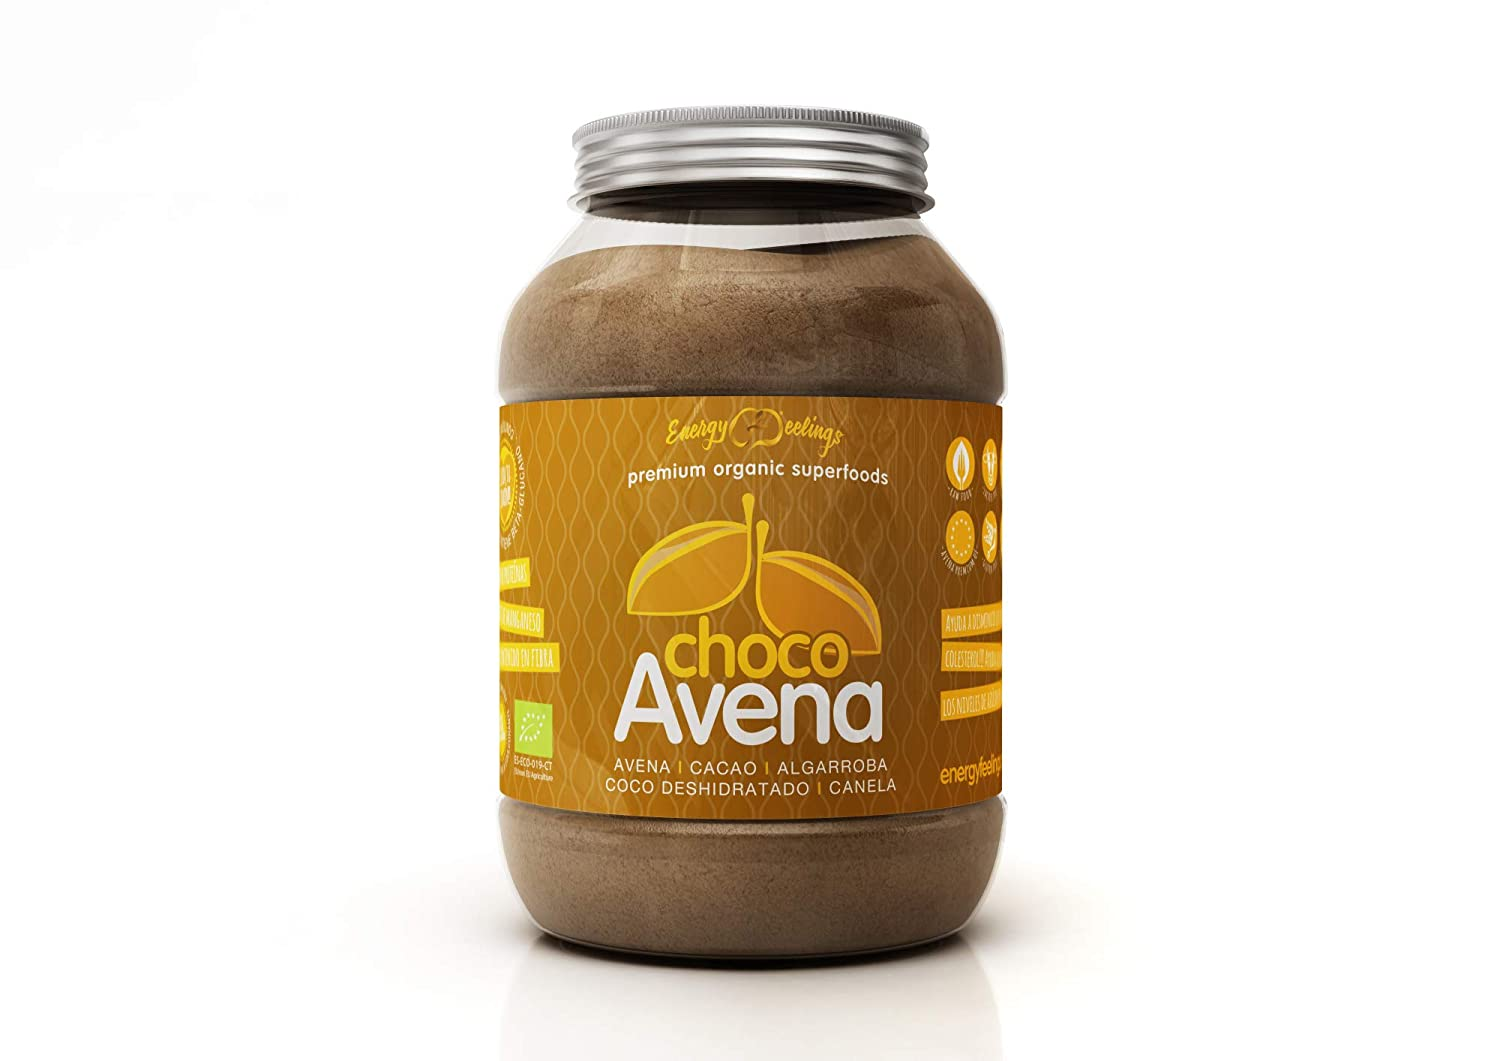 Energy Feelings Choco Avena Eco control de peso - 1,5 Kg: Amazon.es: Salud y cuidado personal